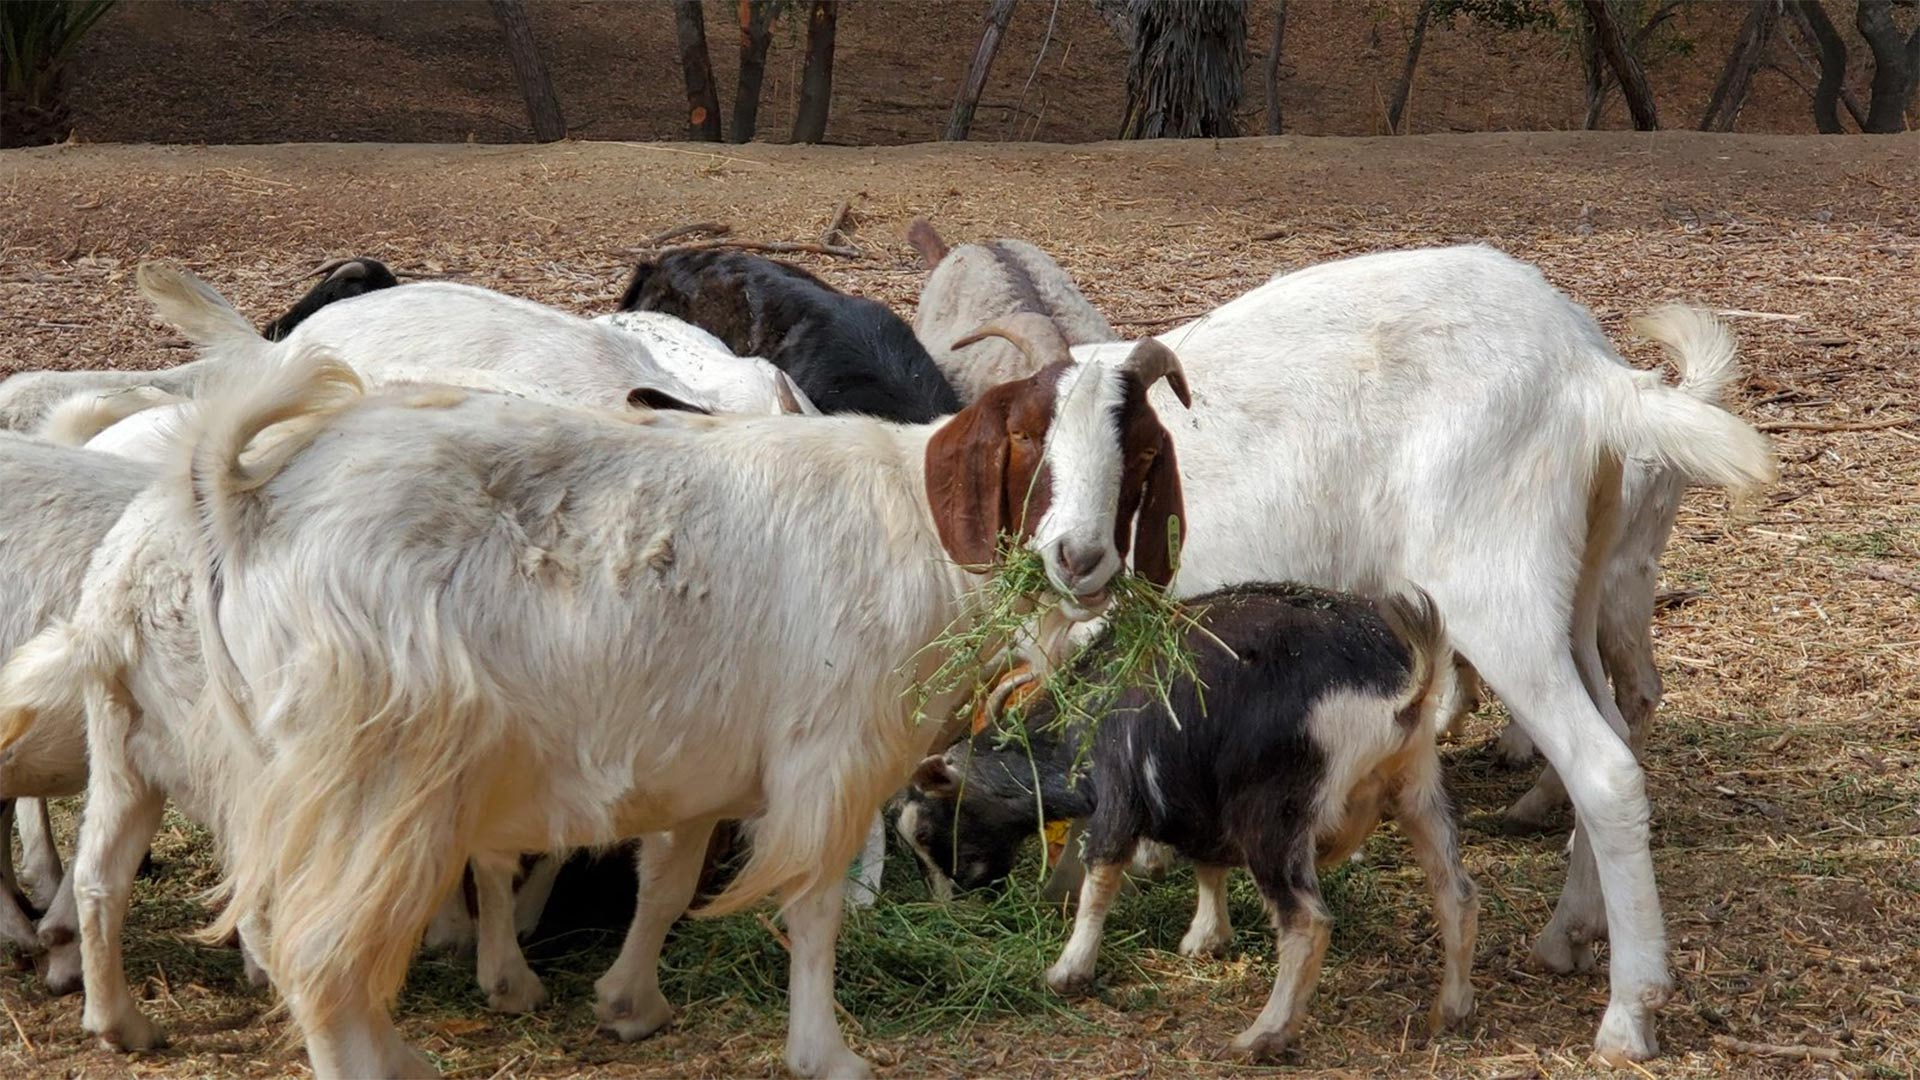 A herd of goats spent the fall in and around Anaheim, Calif.'s Deer Canyon Park helping to keep grasses and other potential wildfire fuels in check.